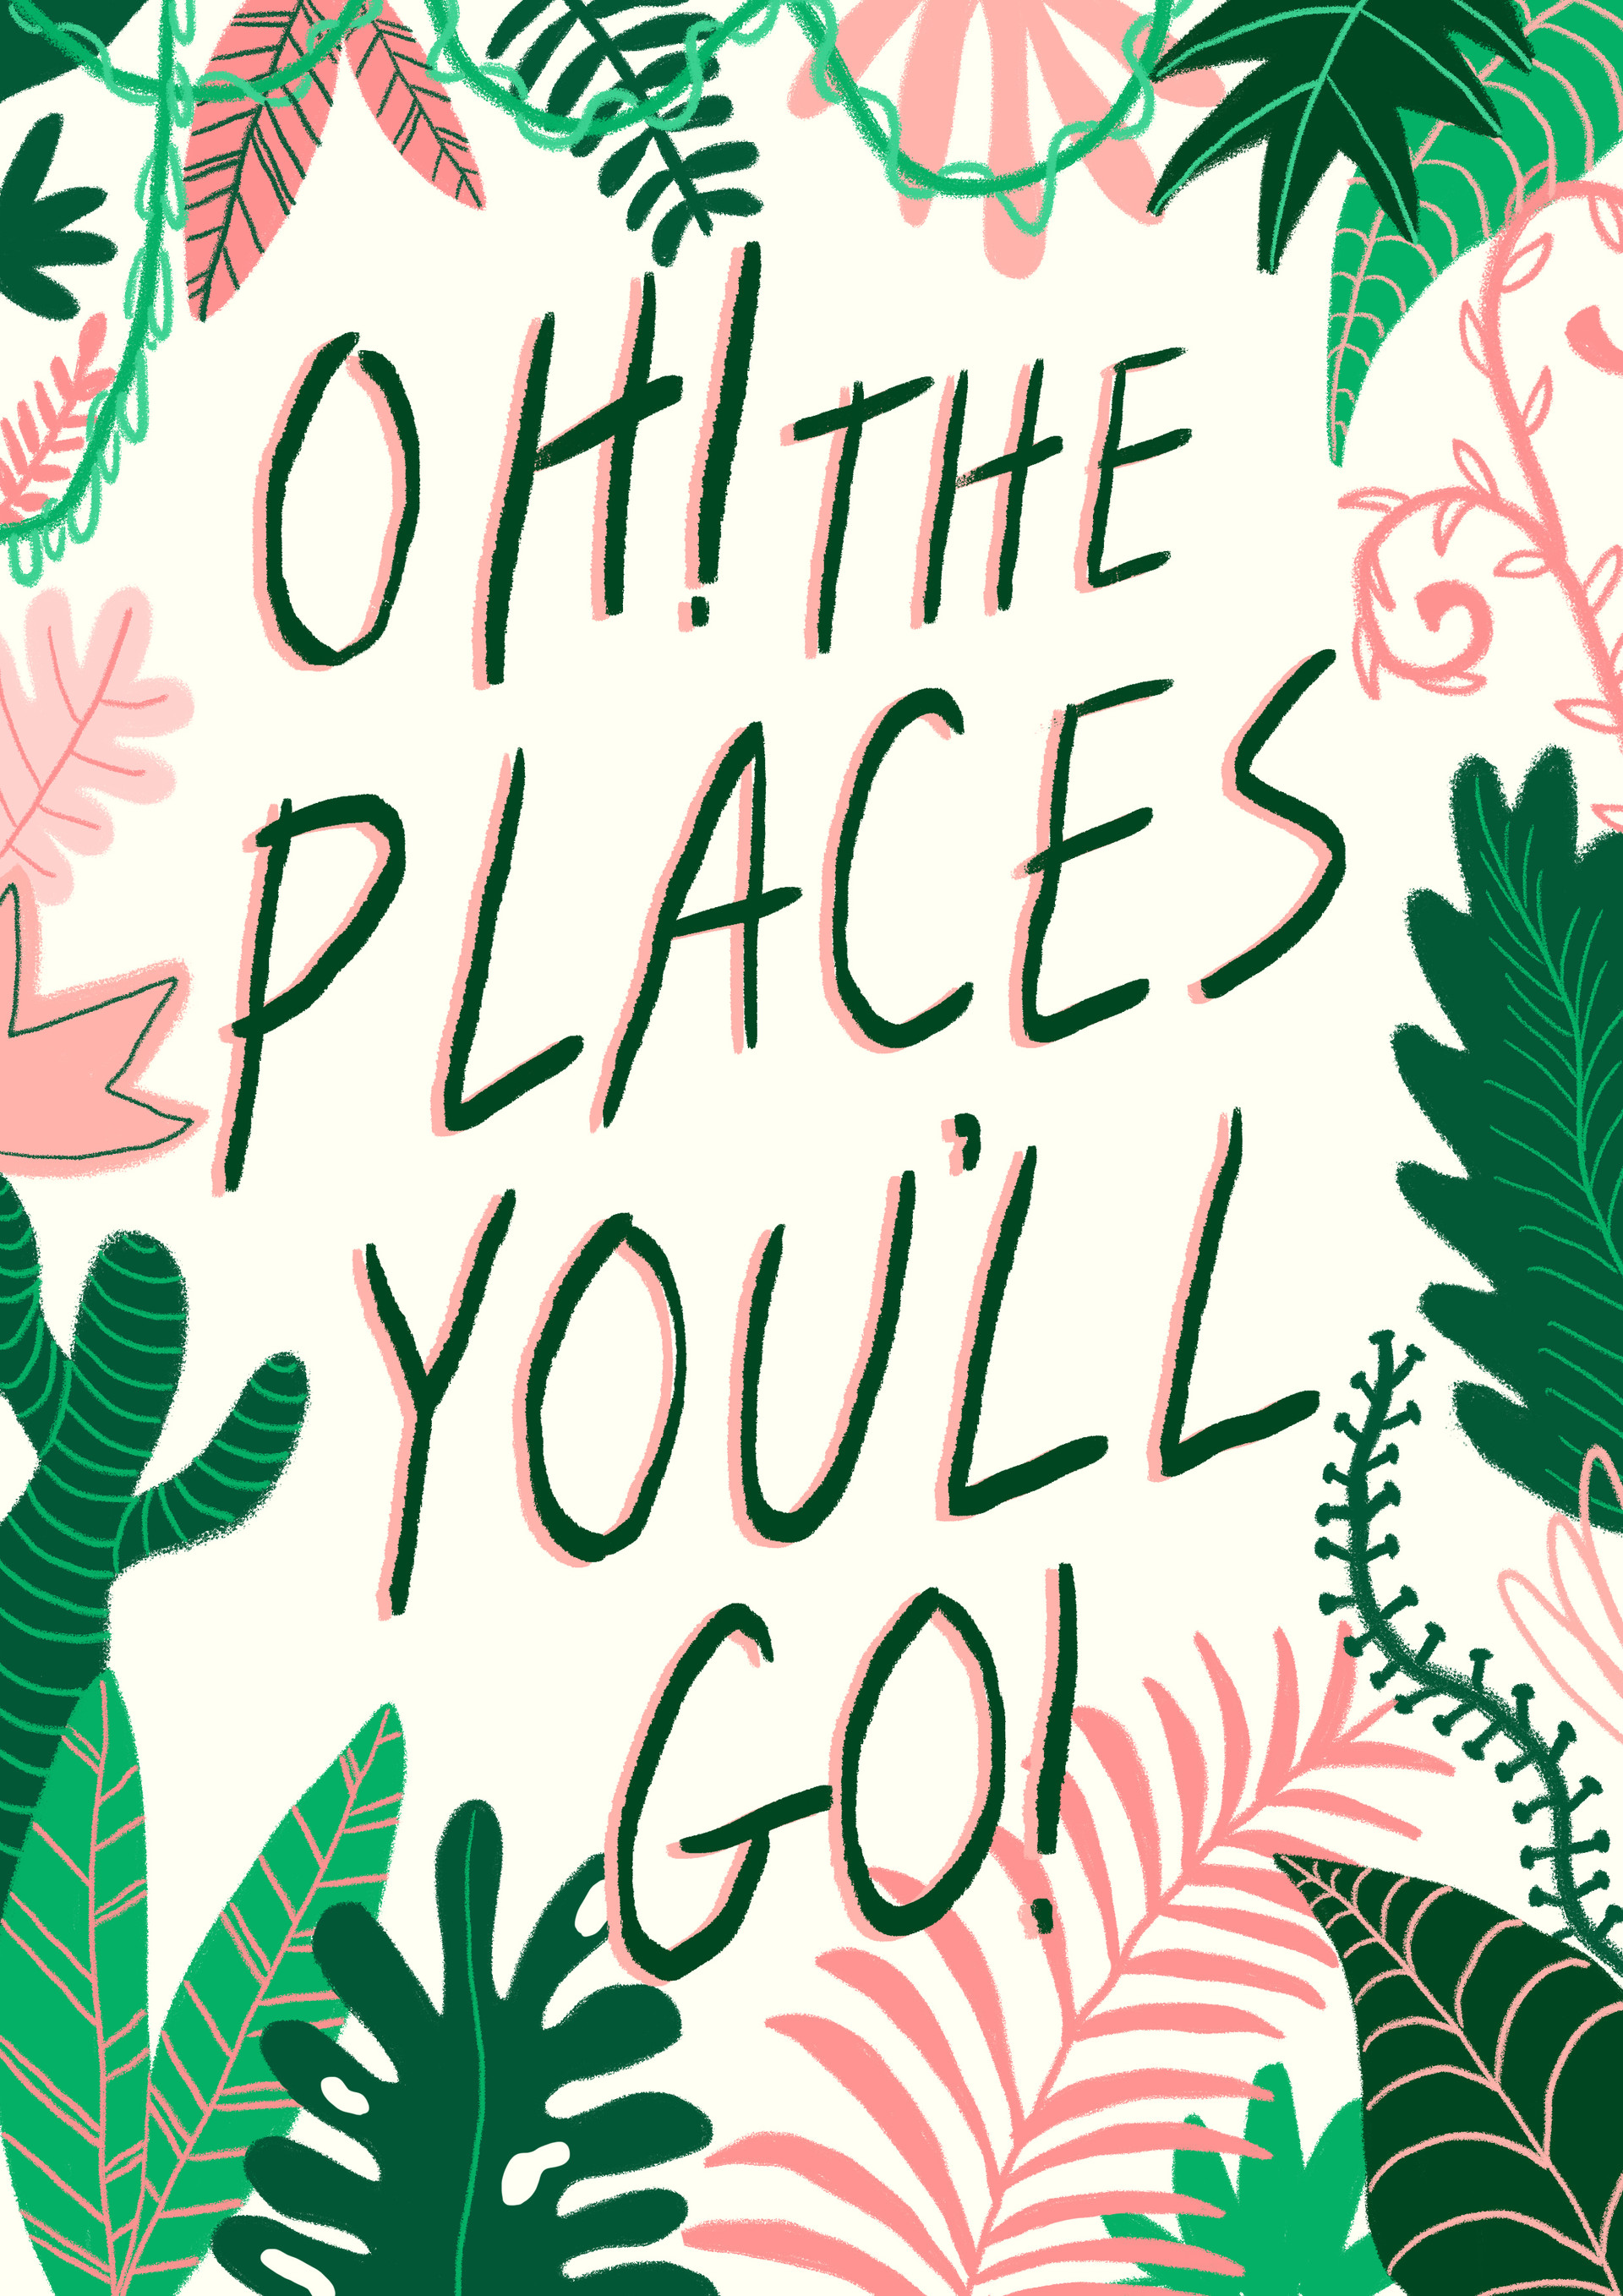 Oh the places you'll go .jpg